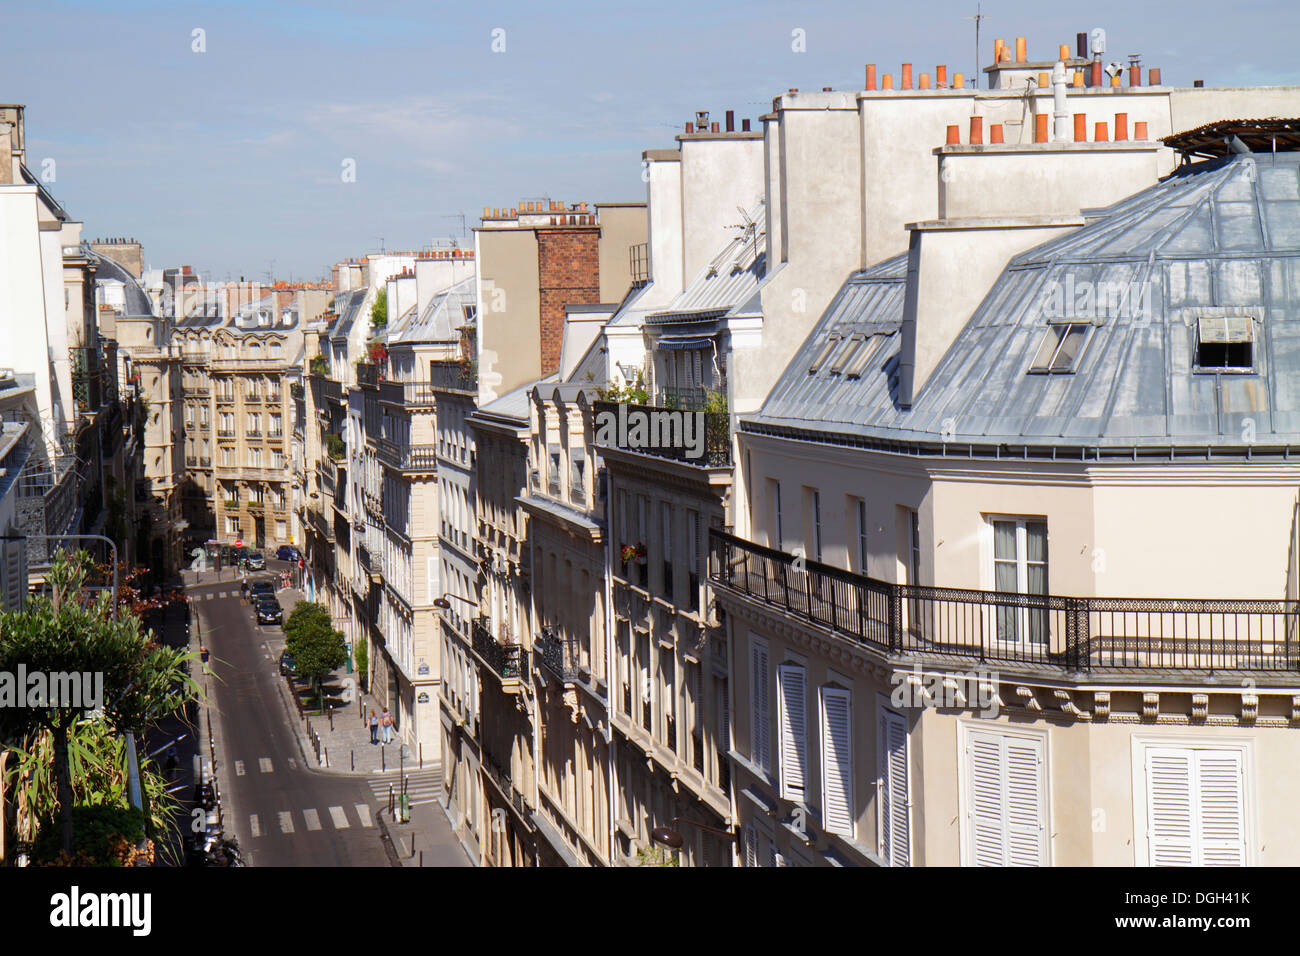 Paris France Europe French 9th arrondissement Rue la Bruyere aerial historic Haussmann apartment buildings rooftops street chimn - Stock Image